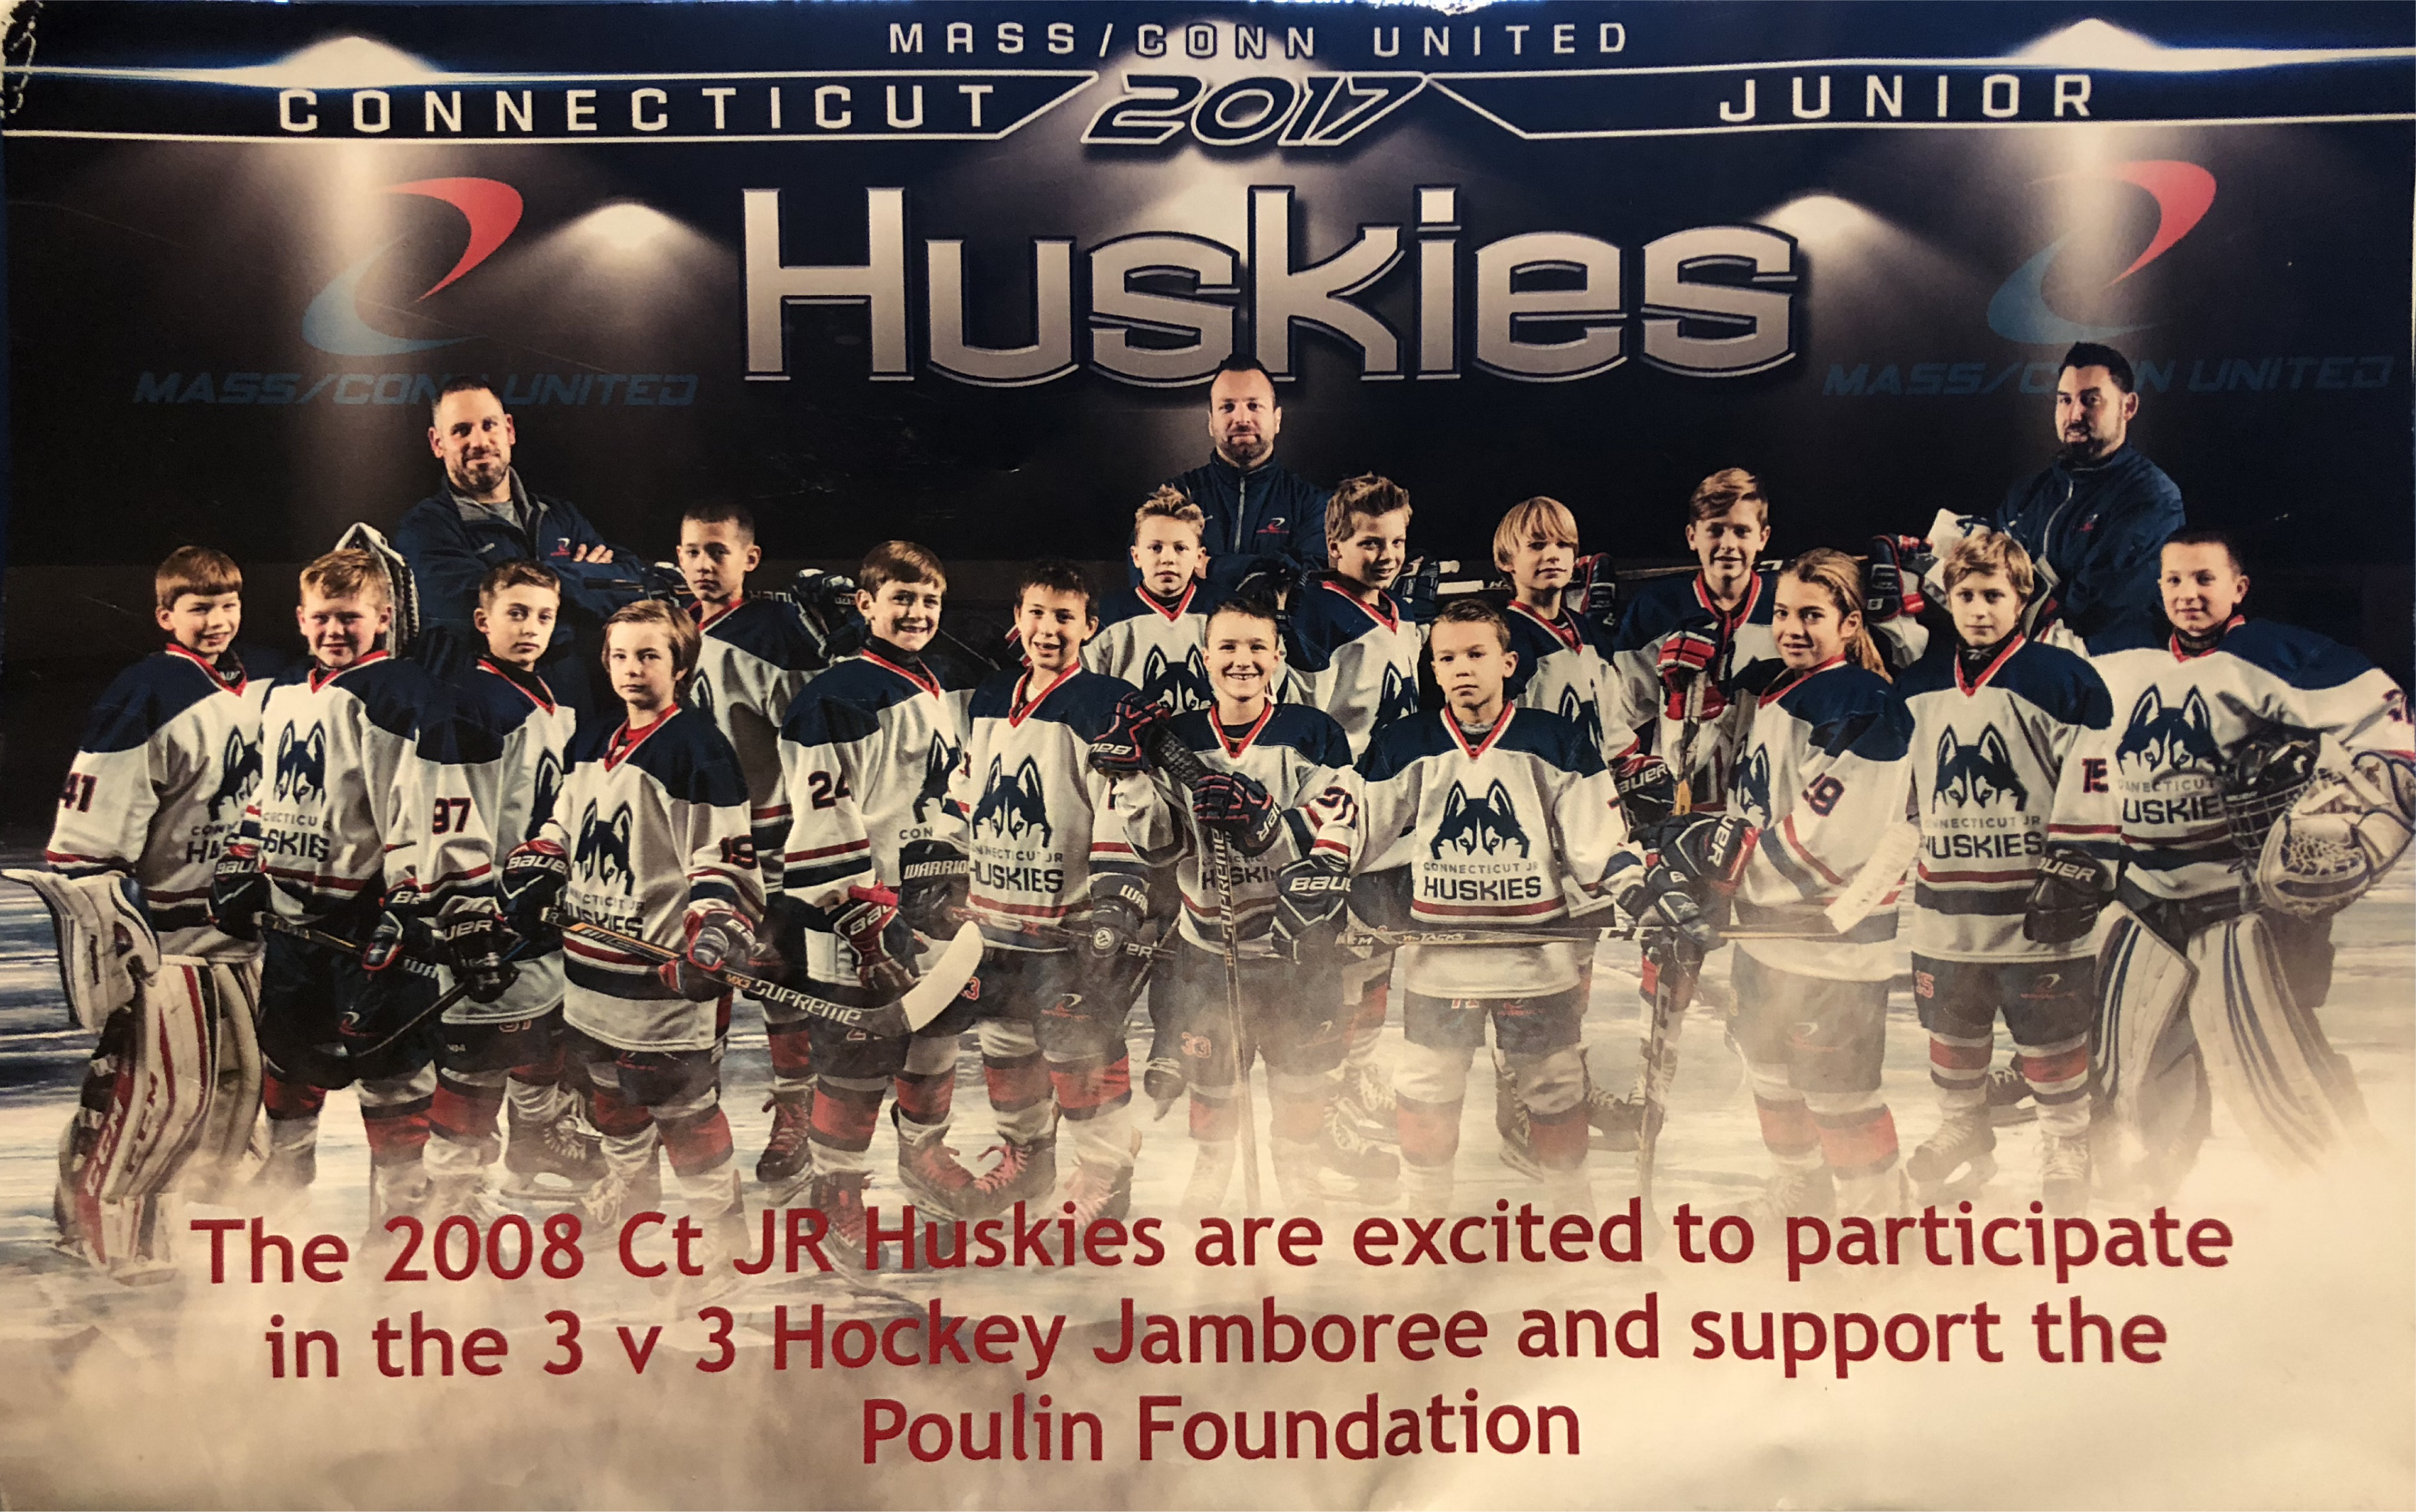 2008 CT Jr Huskies